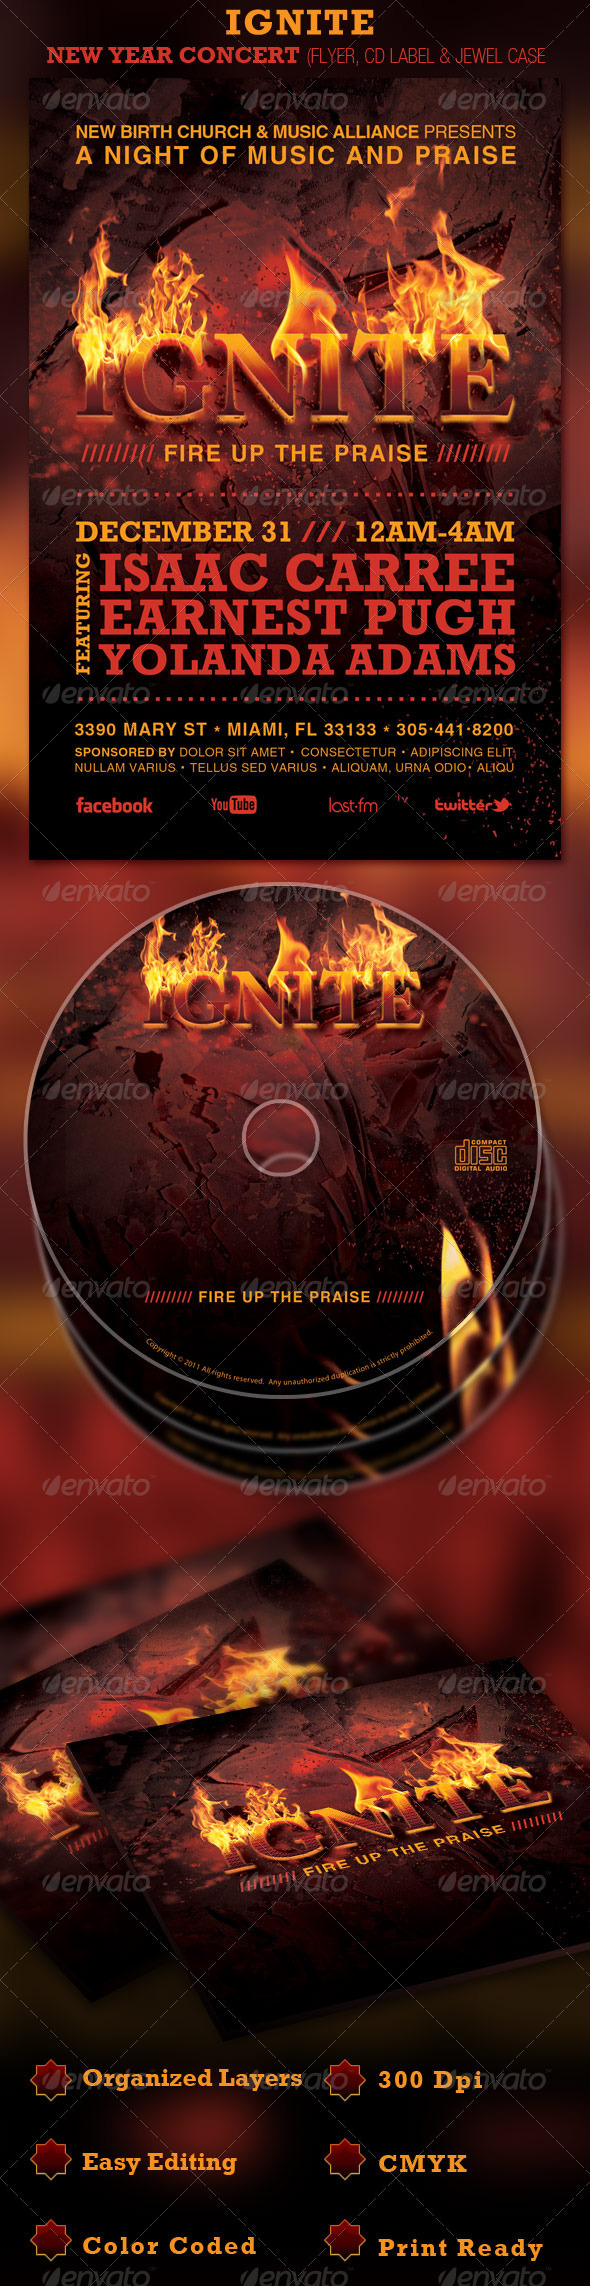 Ignite Church Flyer and CD Template - Church Flyers